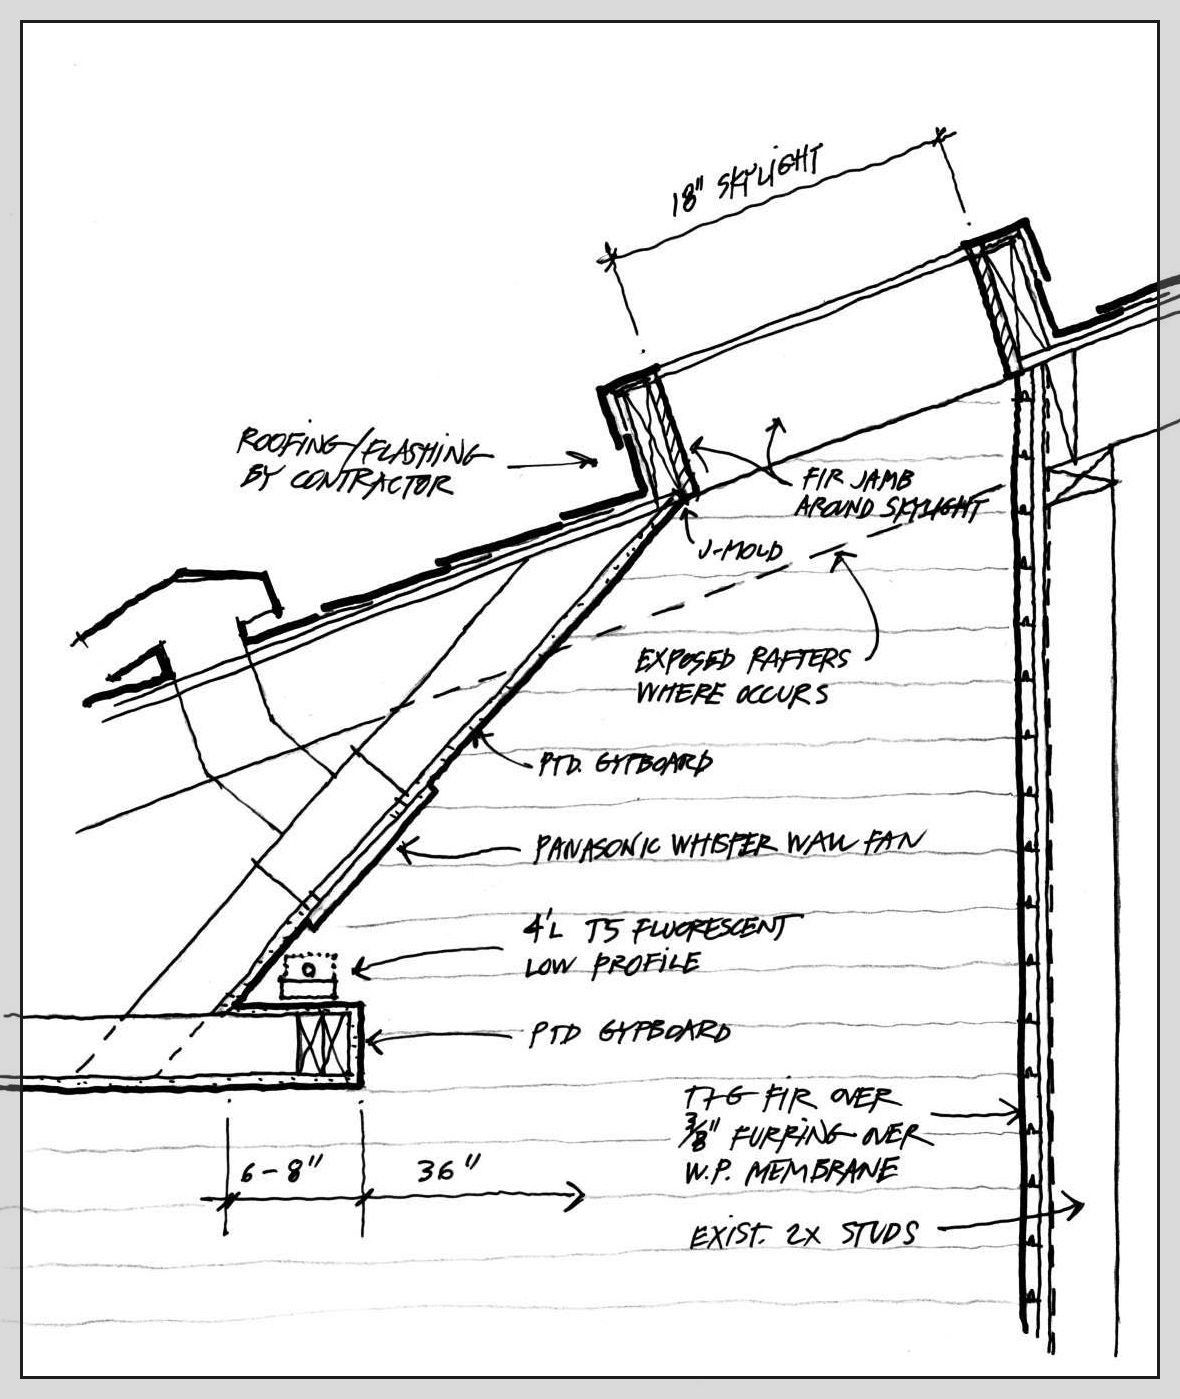 63 Reference Of Concrete Roof Skylight In 2020 Skylight Roof Skylight Roof Structure